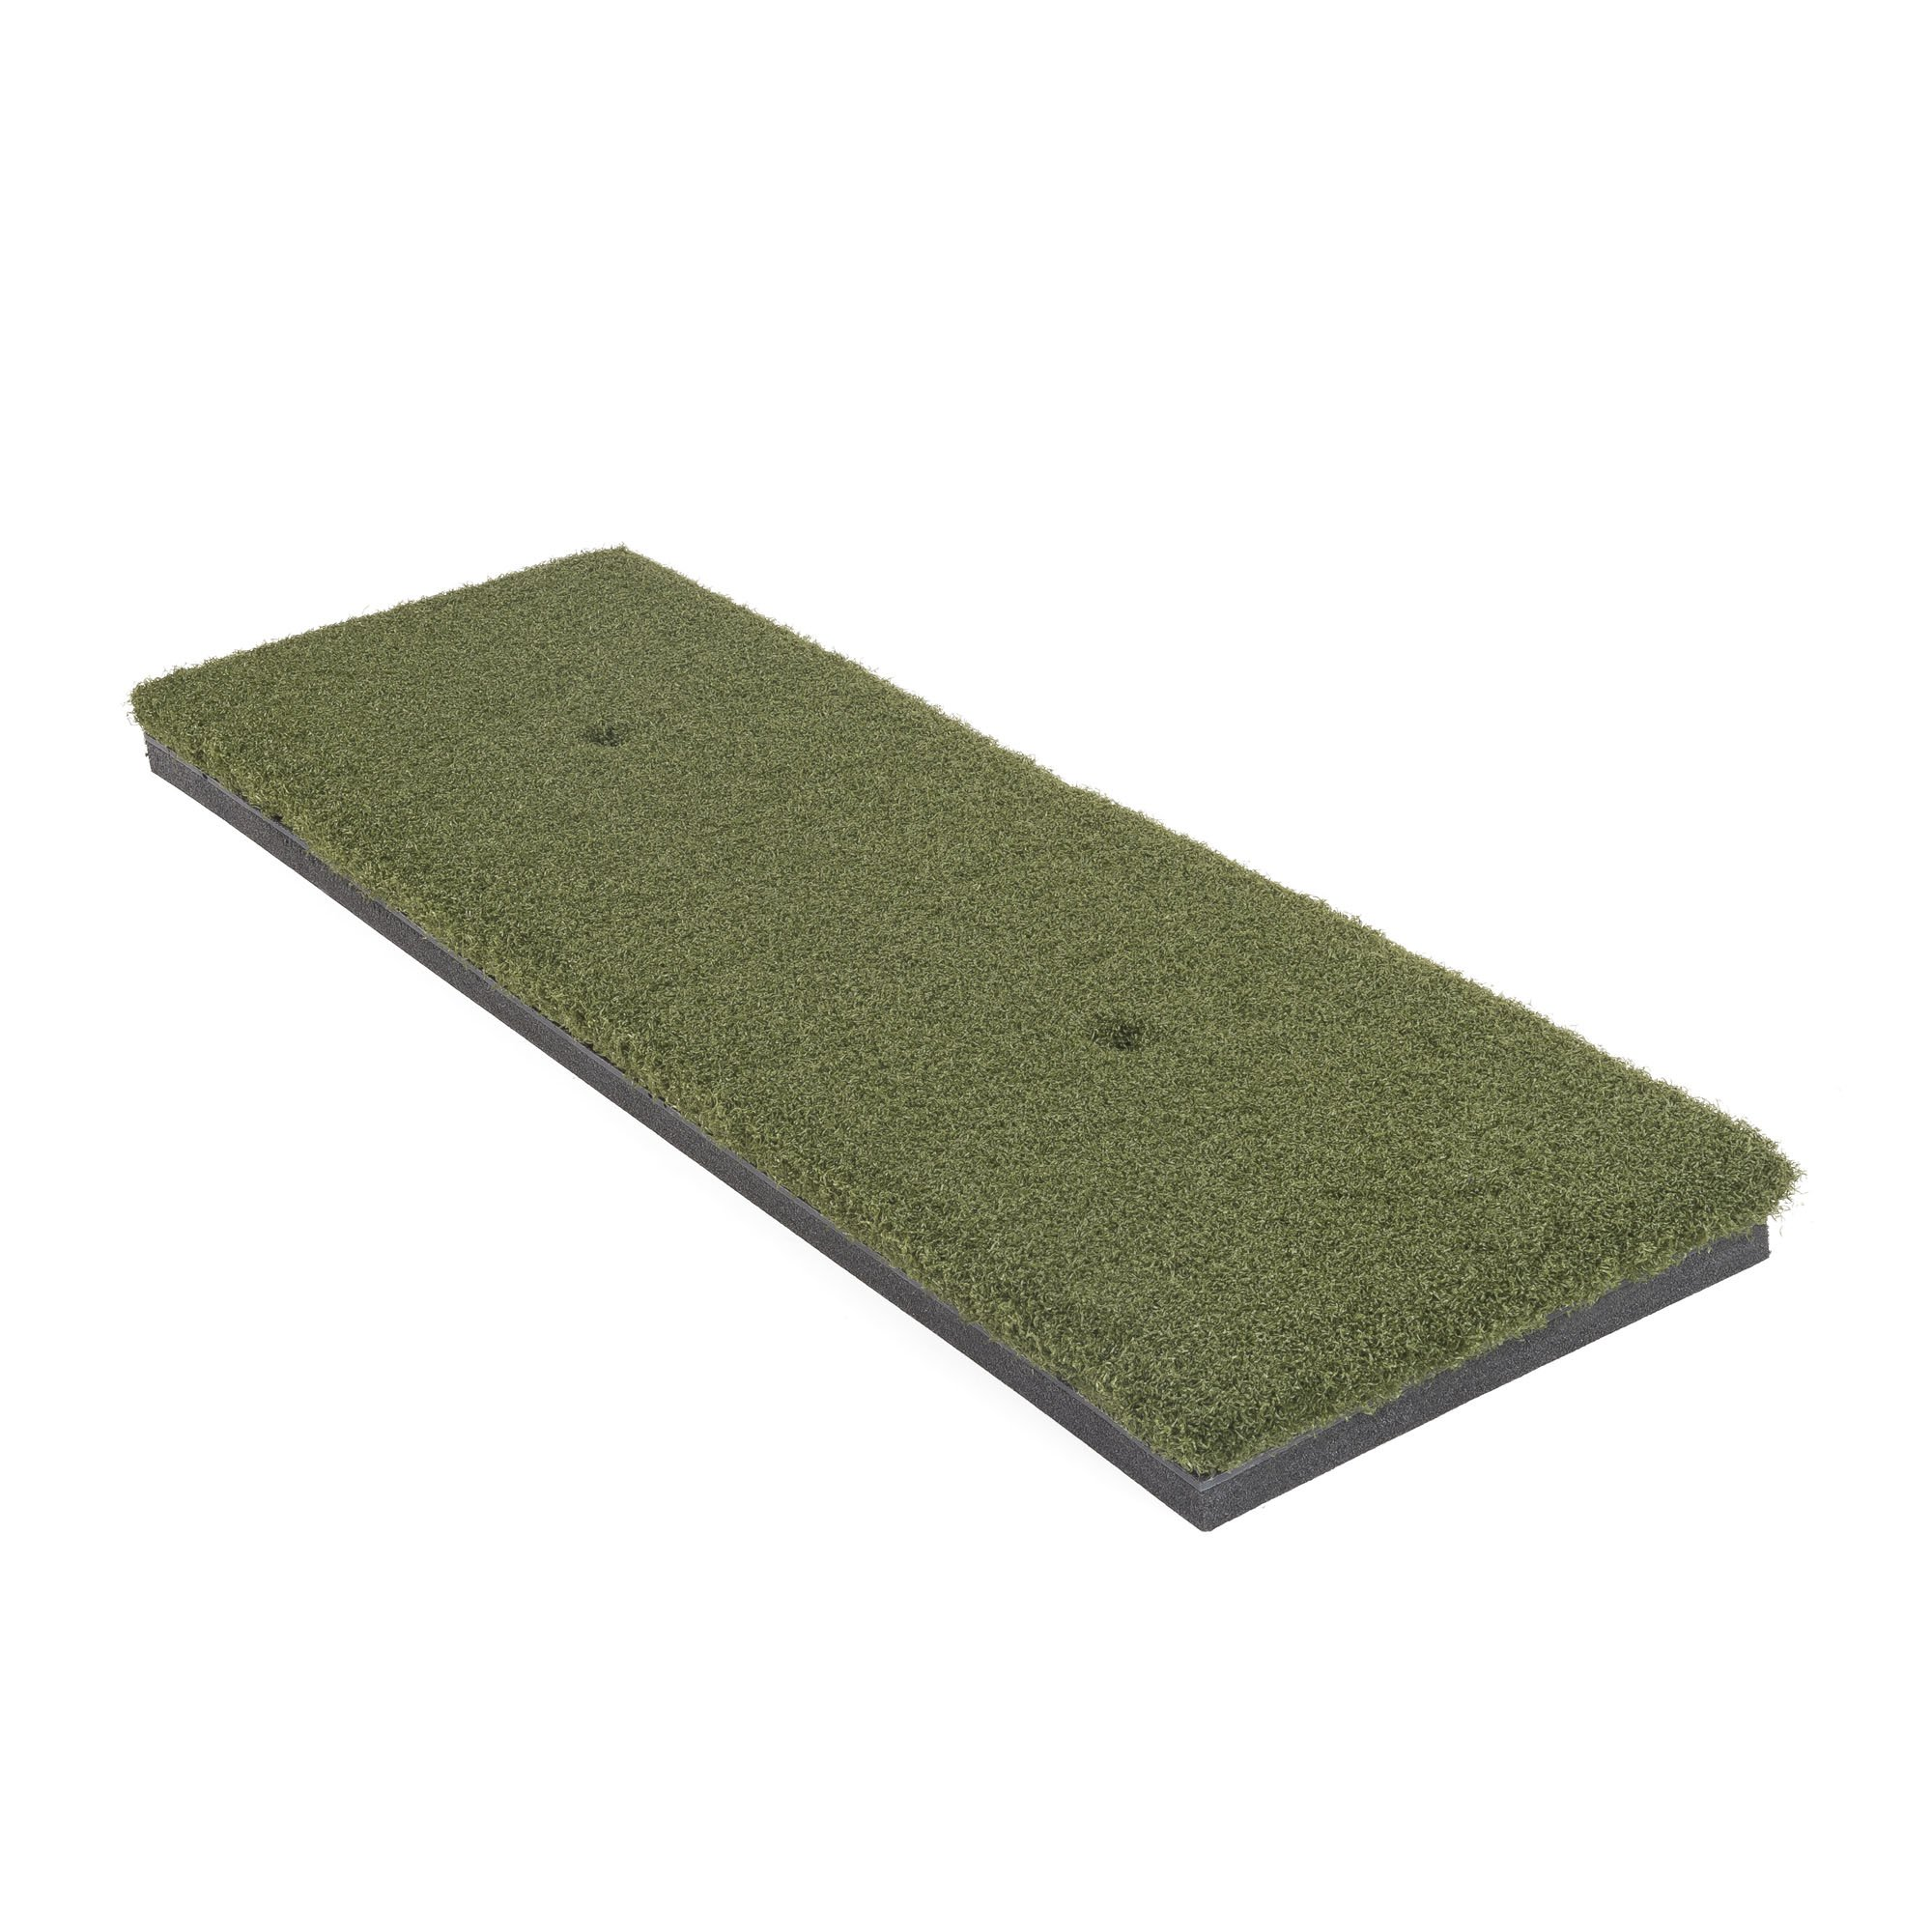 Real Feel Golf Mats Country Club Elite Hitting Strip 10''x30'' (1) by Real Feel Golf Mats